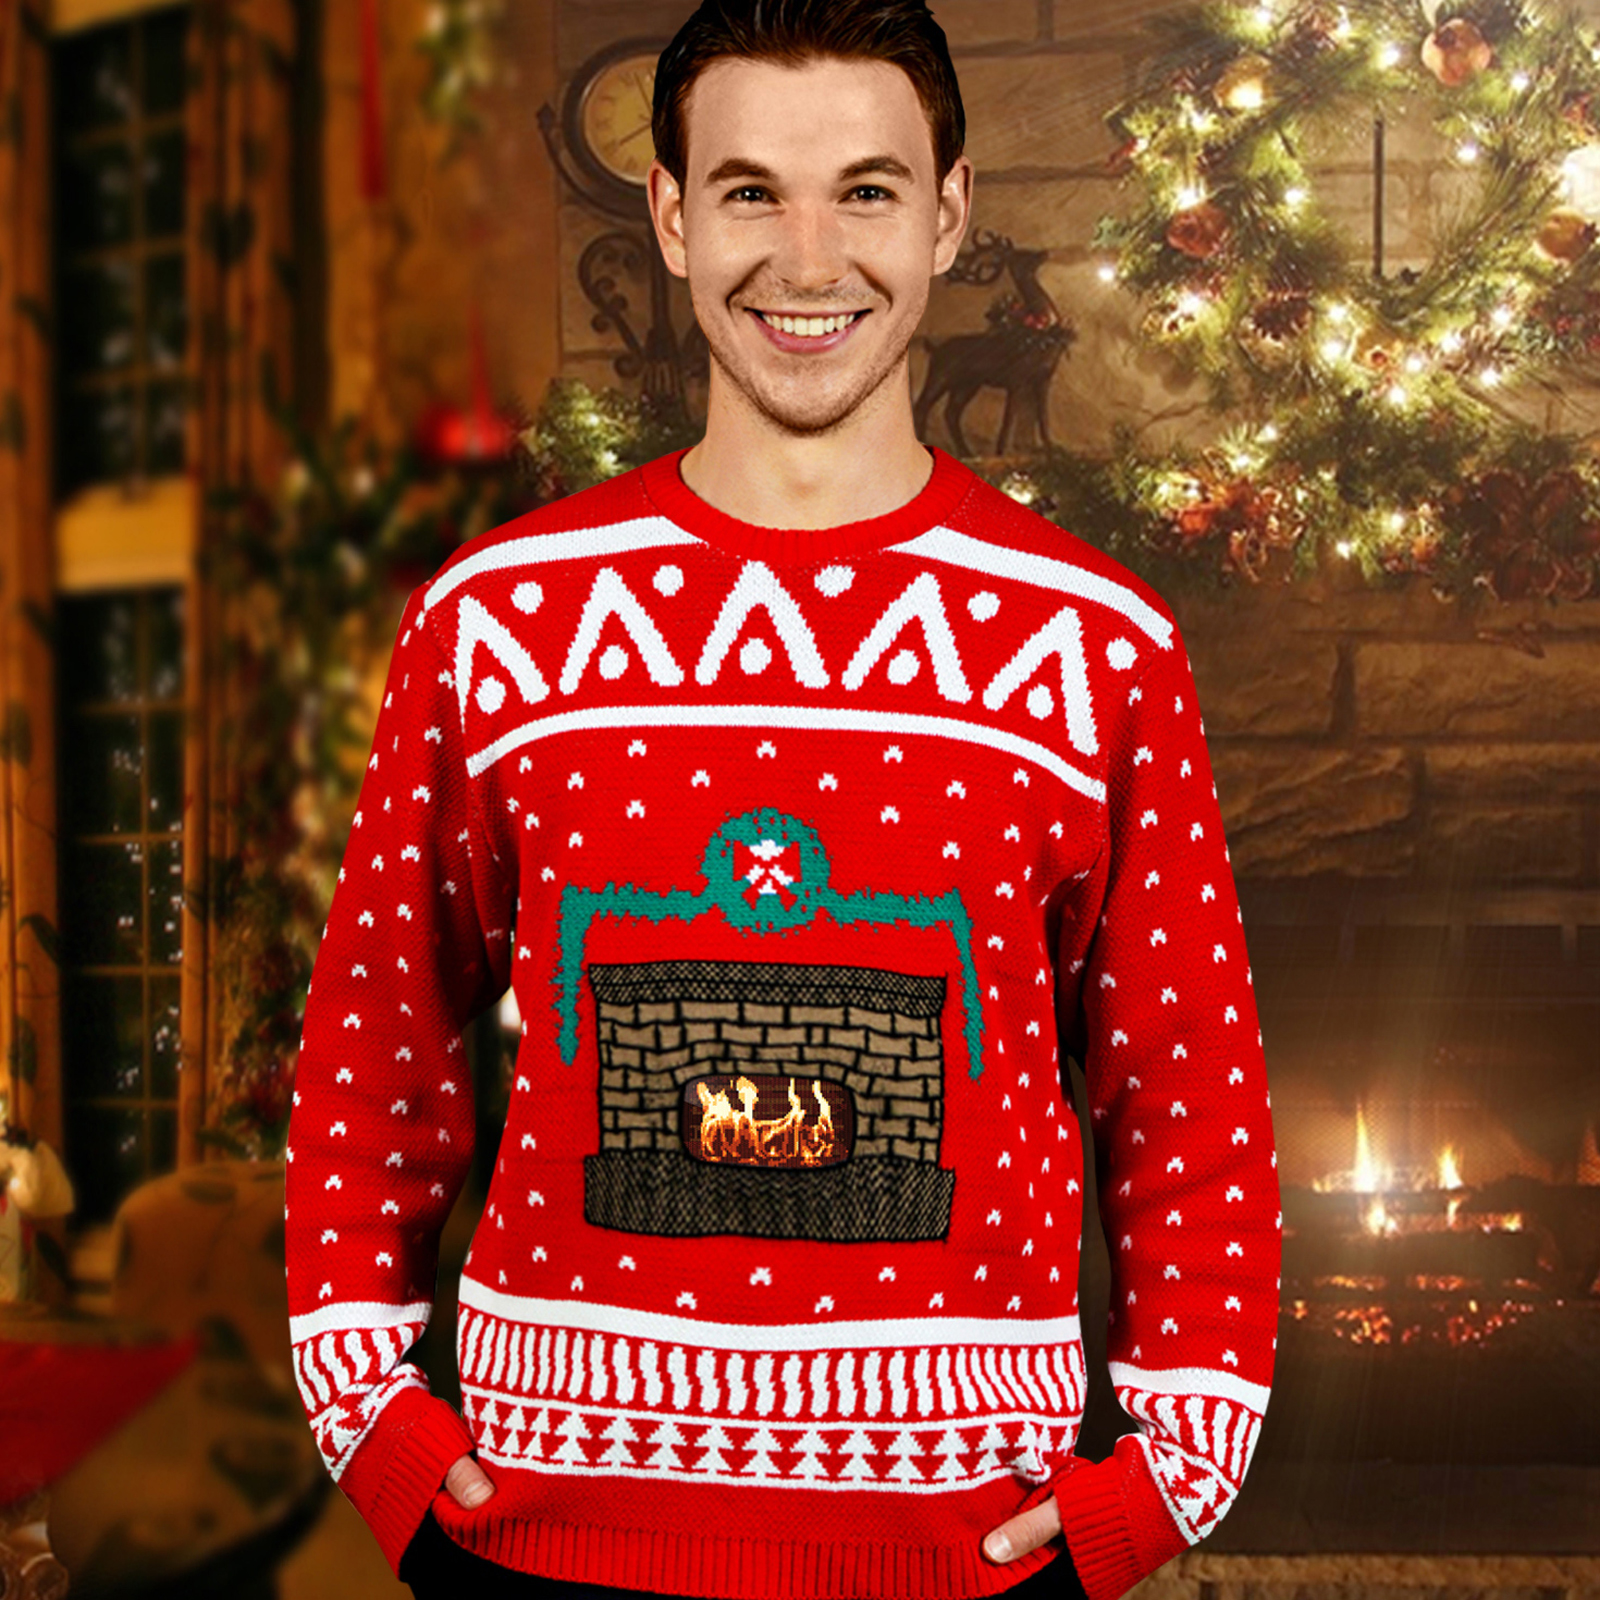 Knit Crackling Fireplace Ugly Christmas Sweater Adult ...